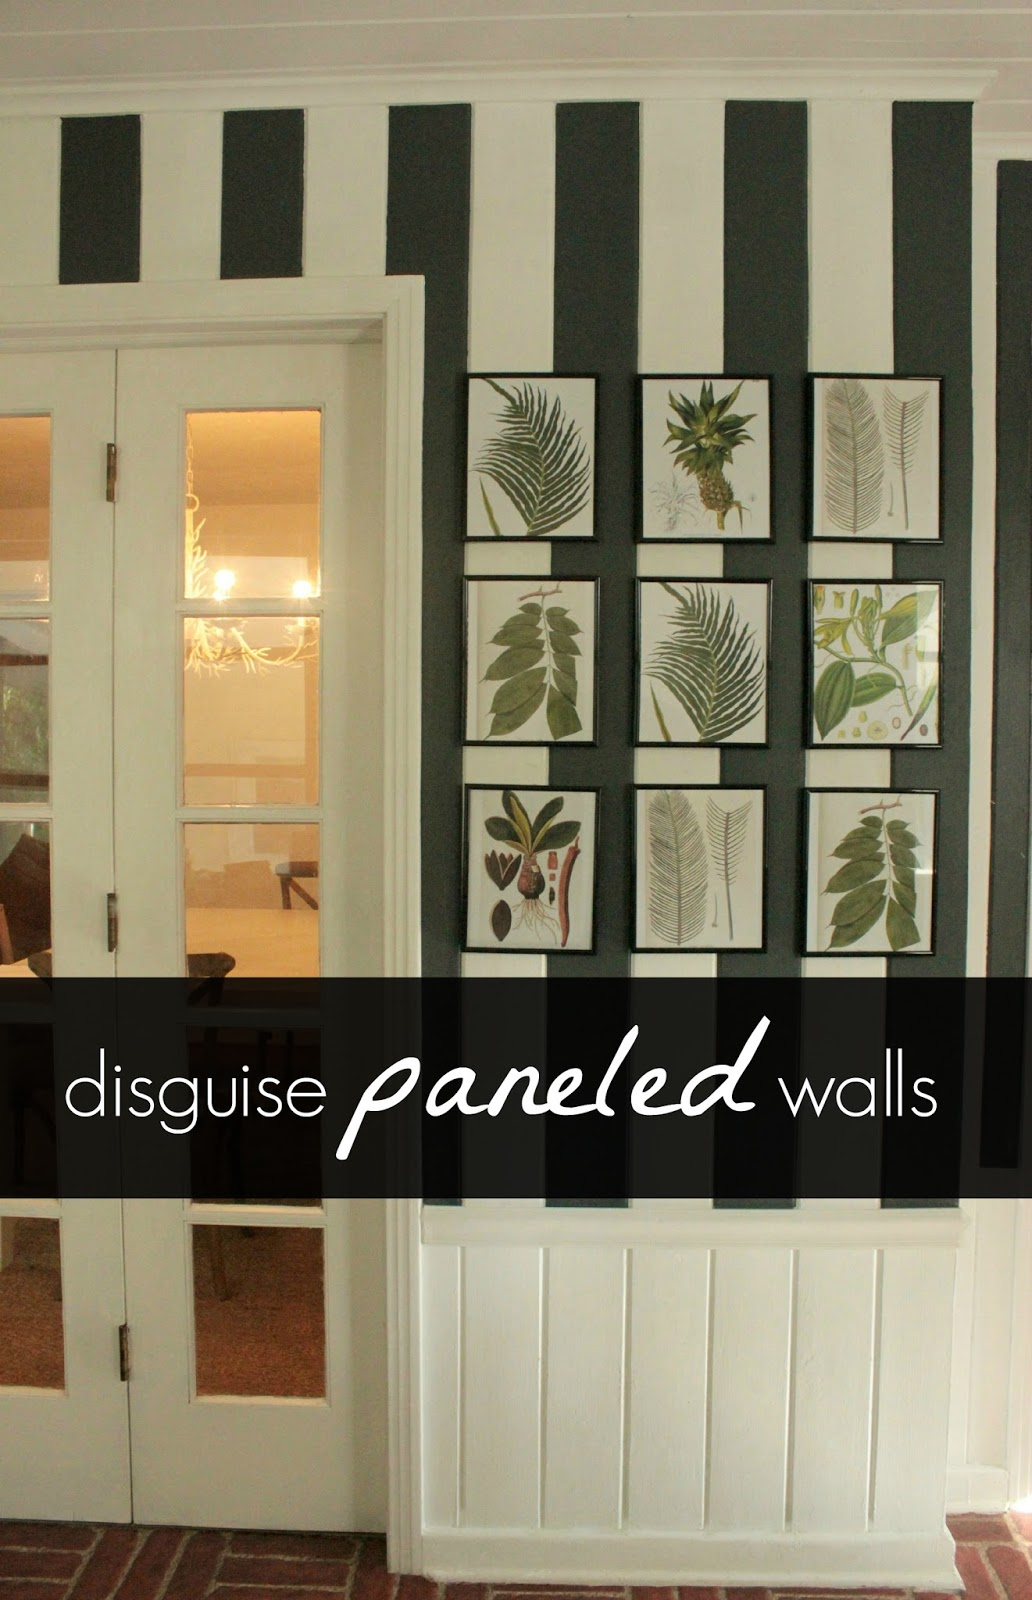 Disguise paneled walls